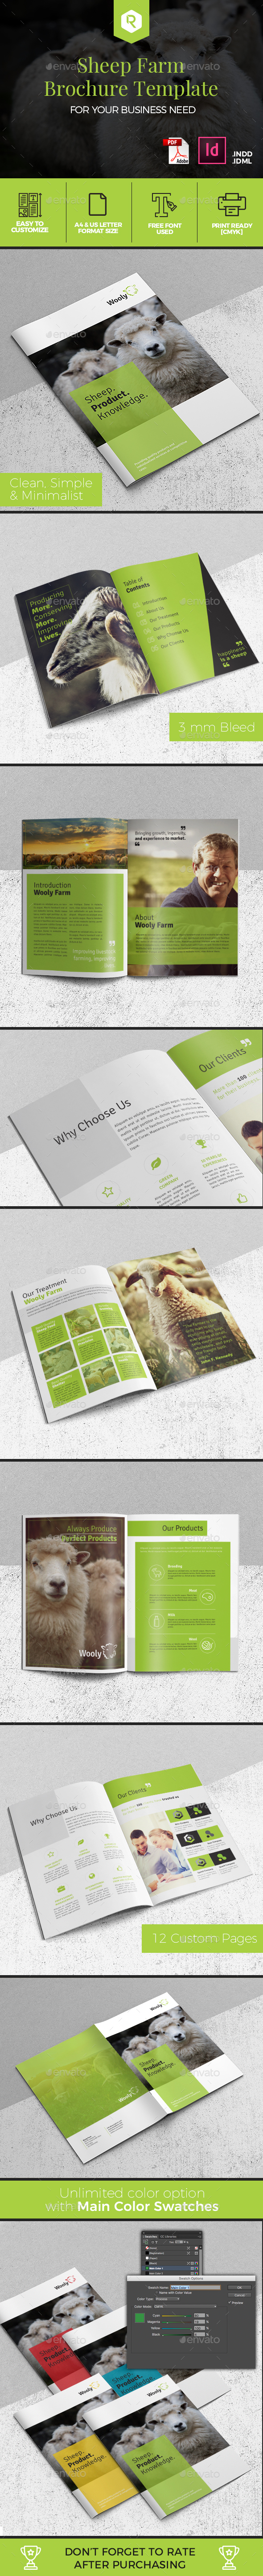 Sheep Farm Brochure - Corporate Brochures